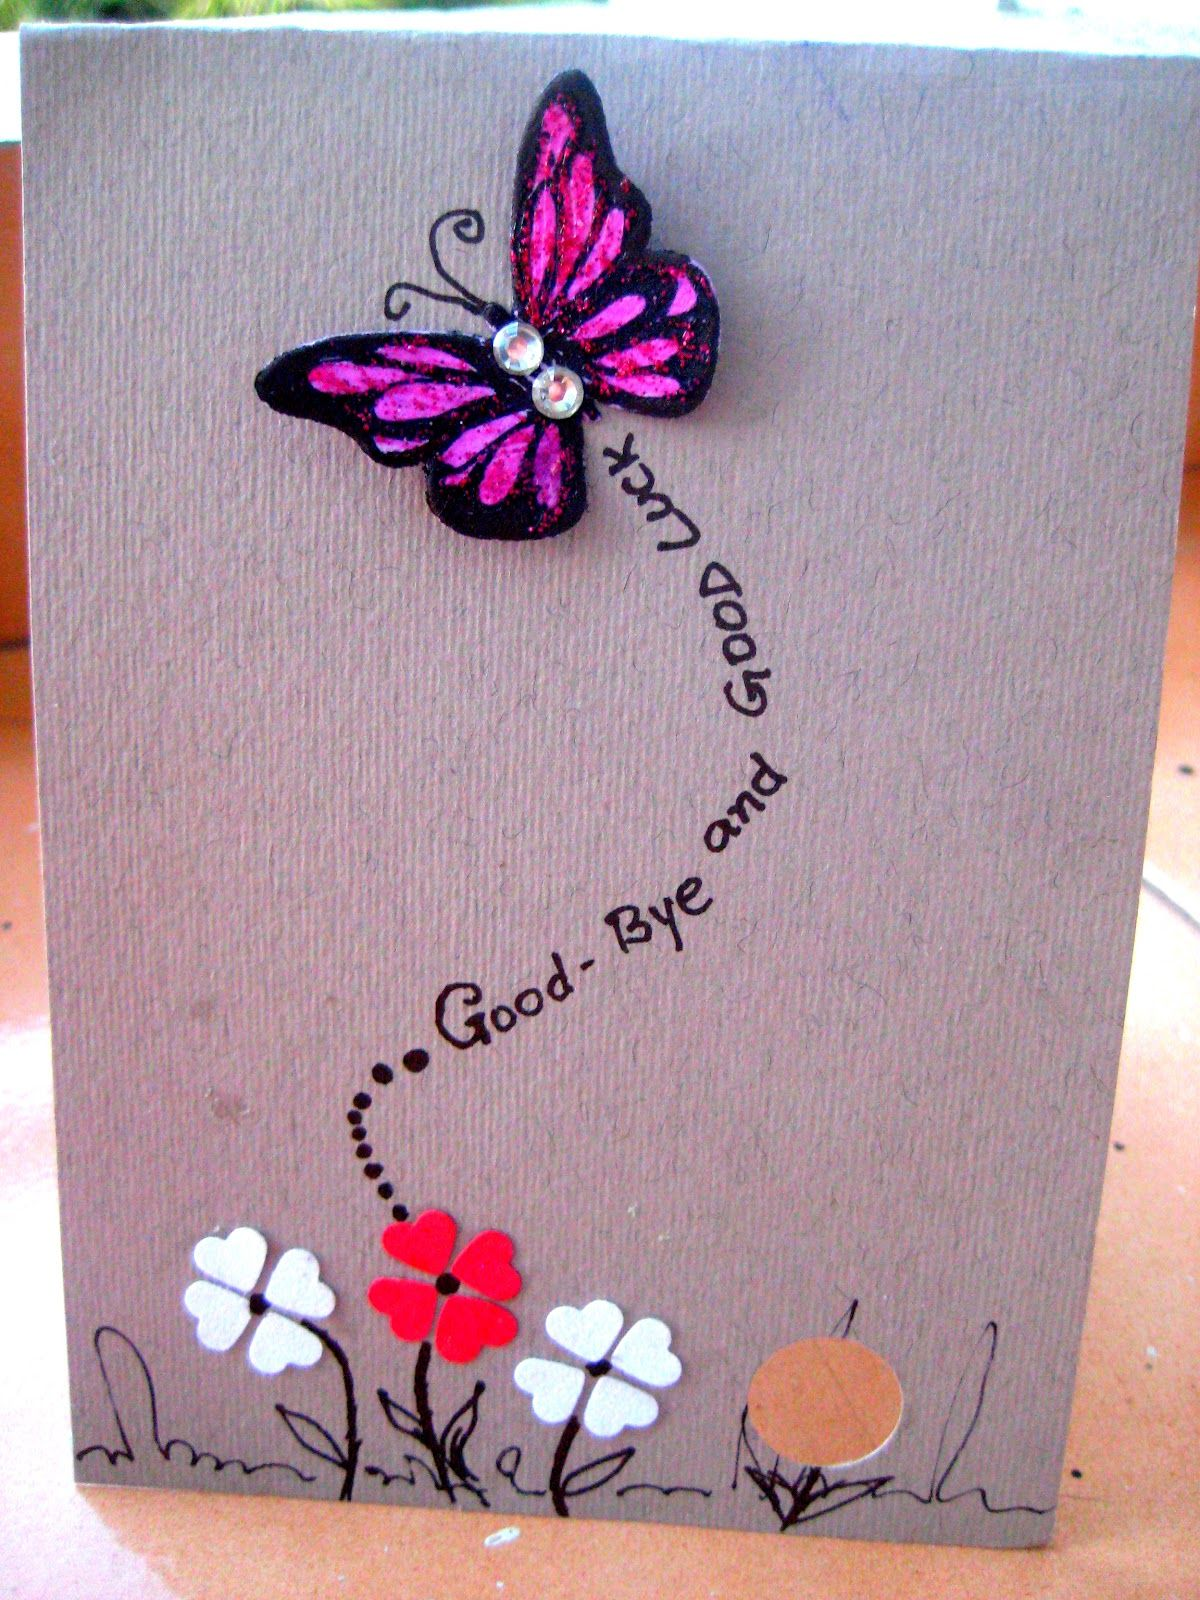 Well miss you card crafts galore pinterest cards card ideas pretty cards kristyandbryce Image collections